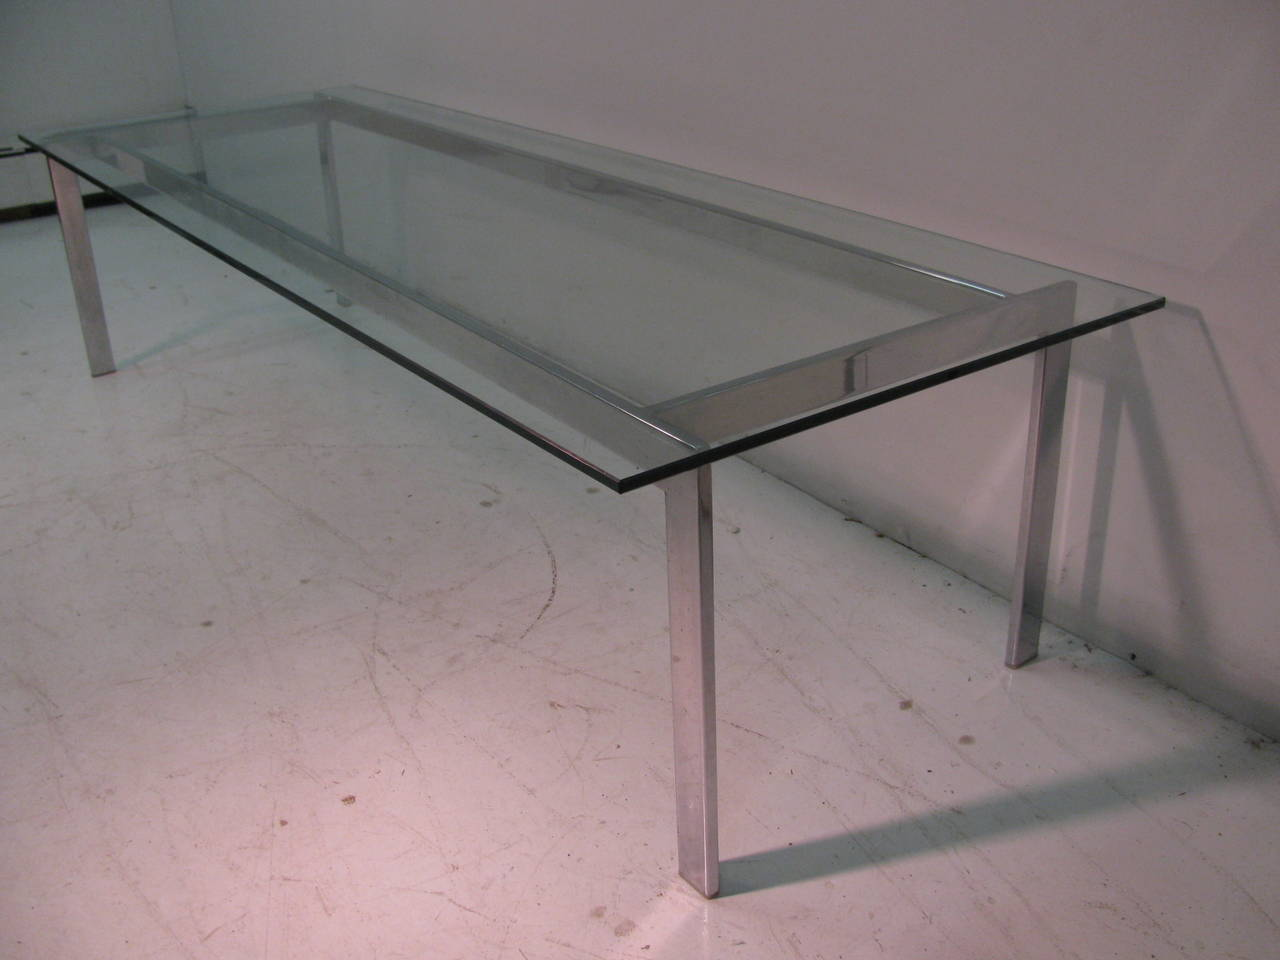 Elegant and simple architectural form created from nickel chrome steel with a glass top. Long and slender rectangle. All inquiries please call or just press